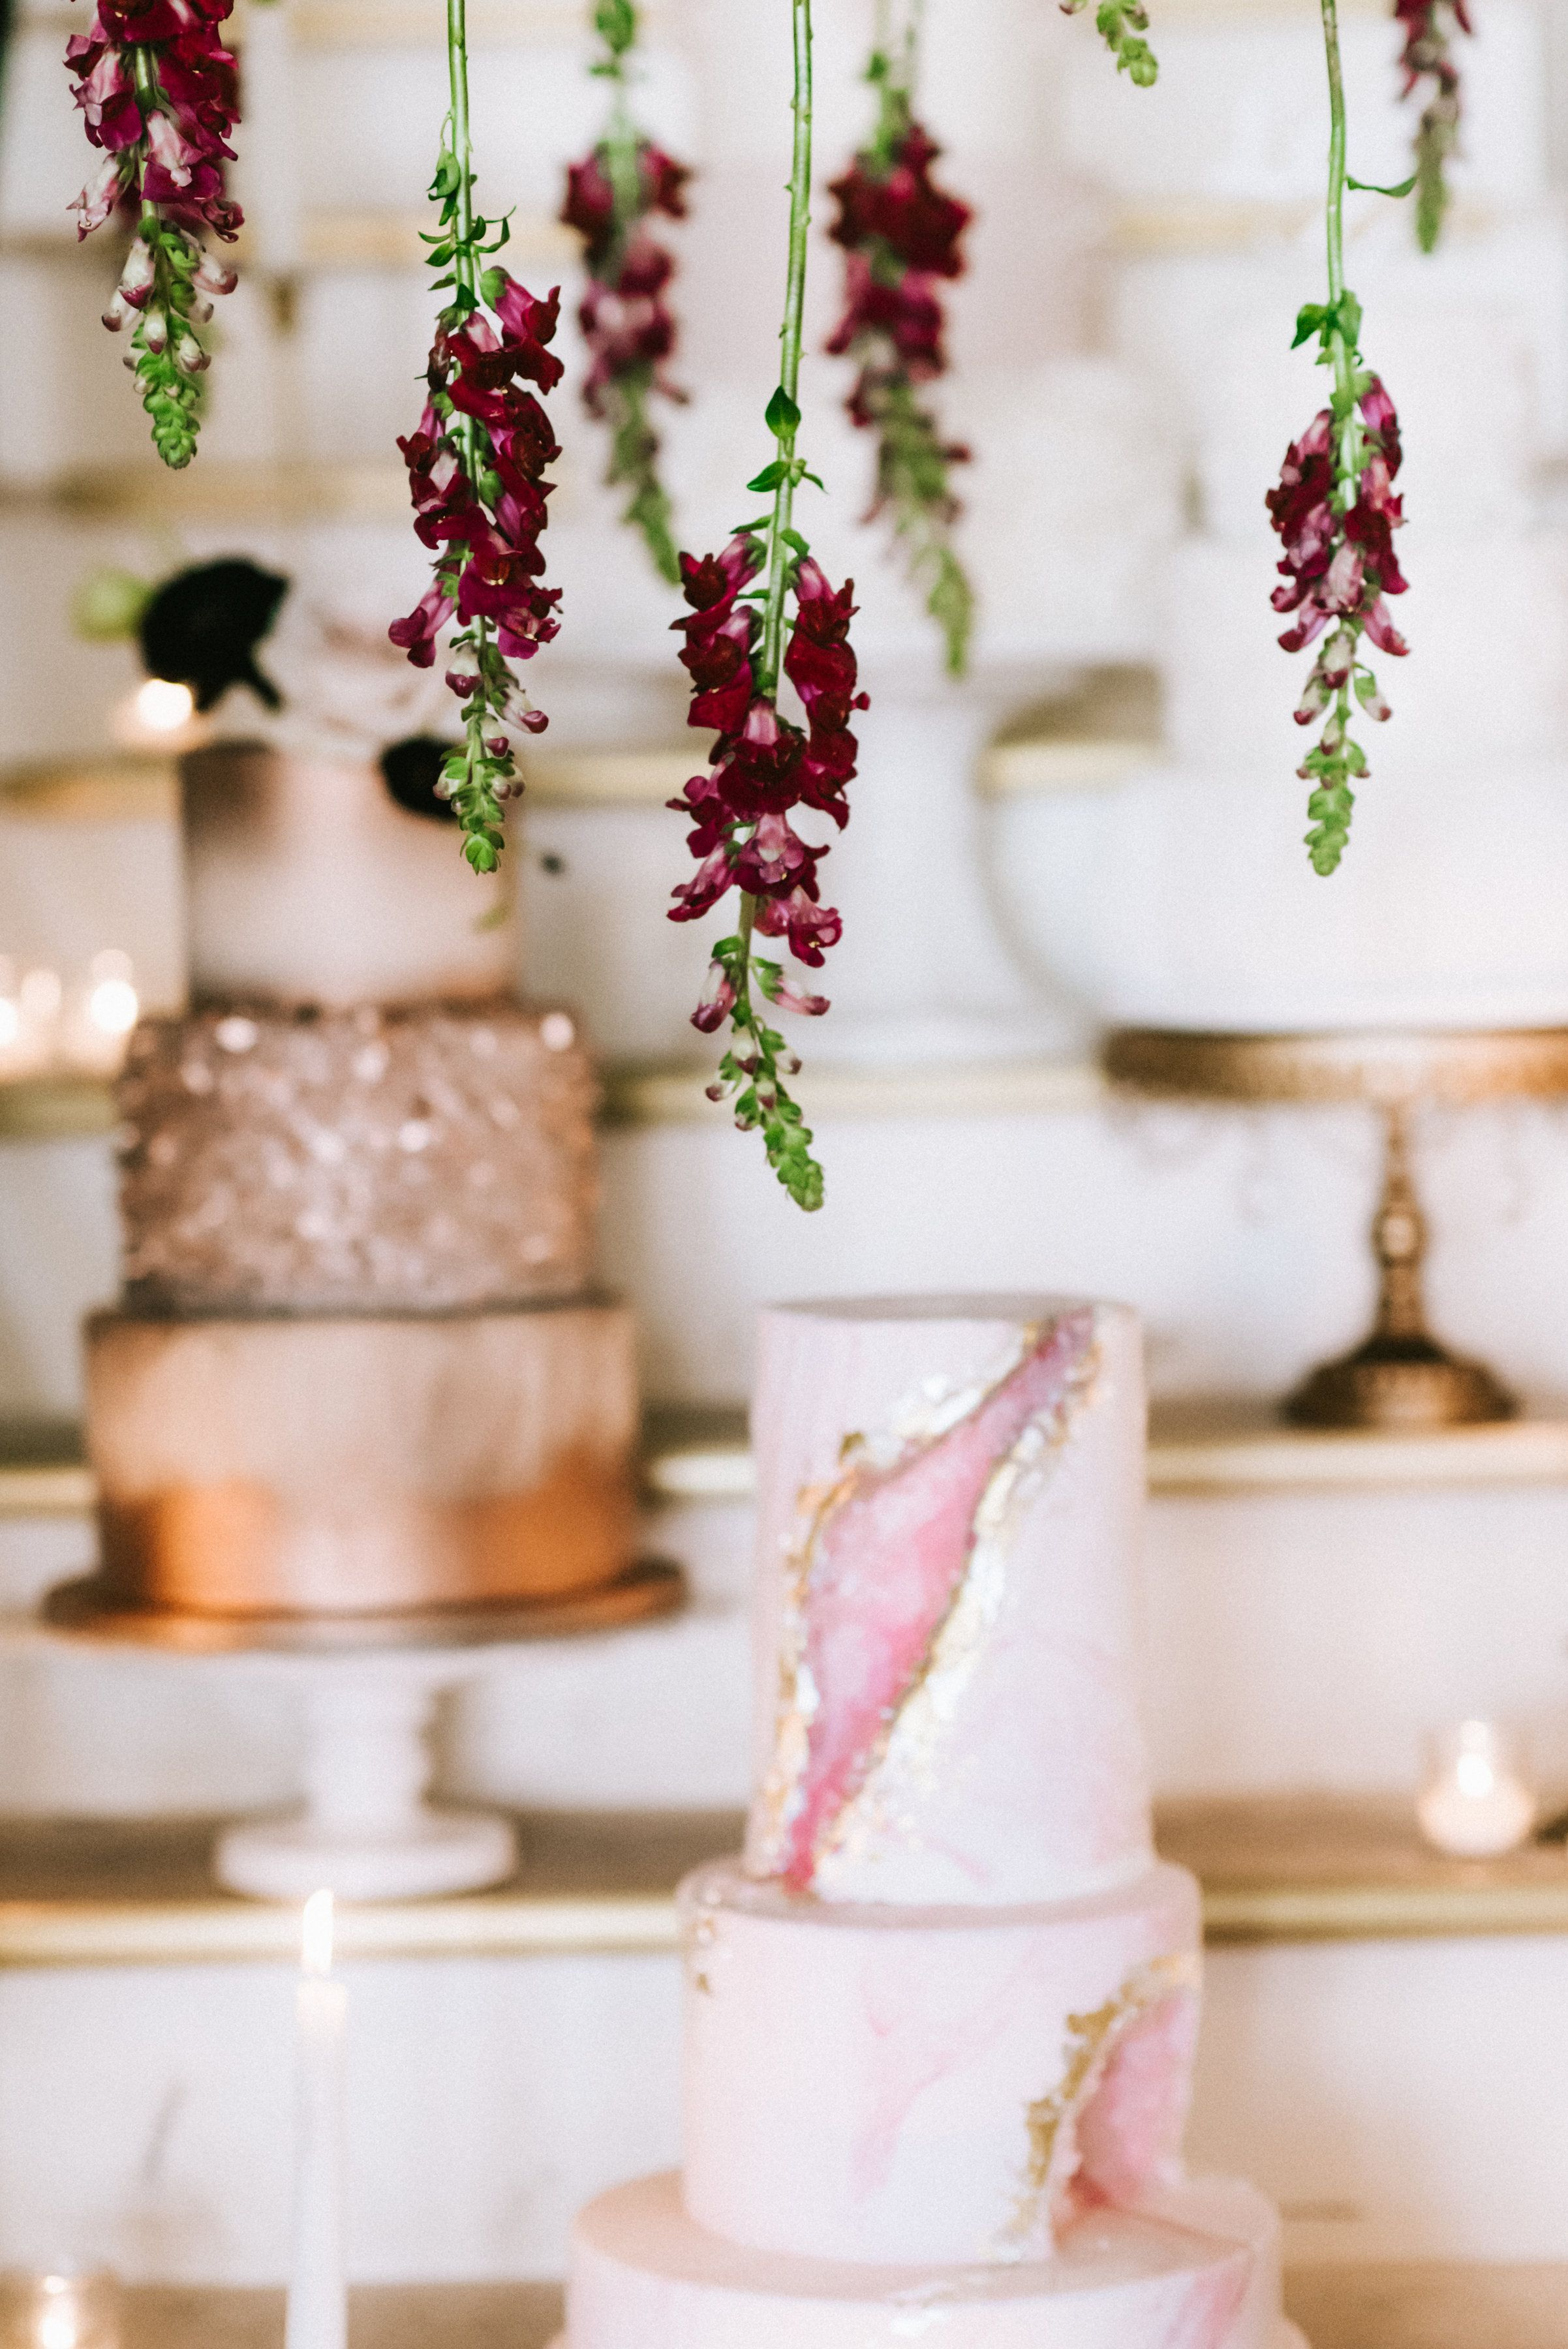 Floral Design by Color Theory Collective | Photo by Sarah Goss | Planning and Styling by Eighteenth Avenue Events | Cakes by Cakes ROCK ATX | Hanging flowers above wedding cakes | Burgundy Snap Dragons Hanging as Floral Installation   Venue : One Eleven East, Hutto